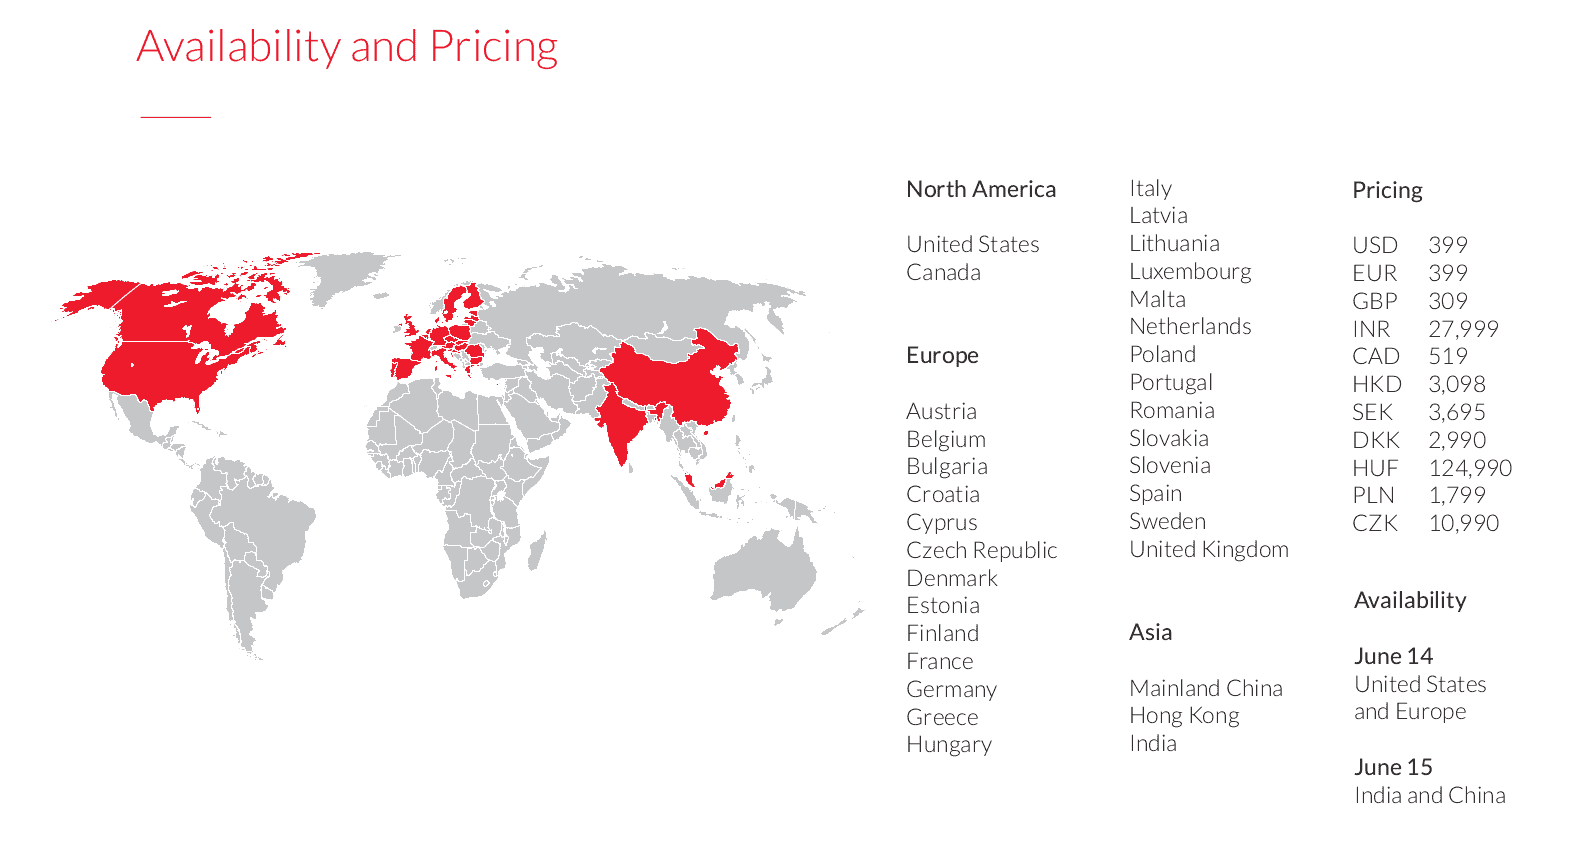 OnePlus 3 availability and pricing_1